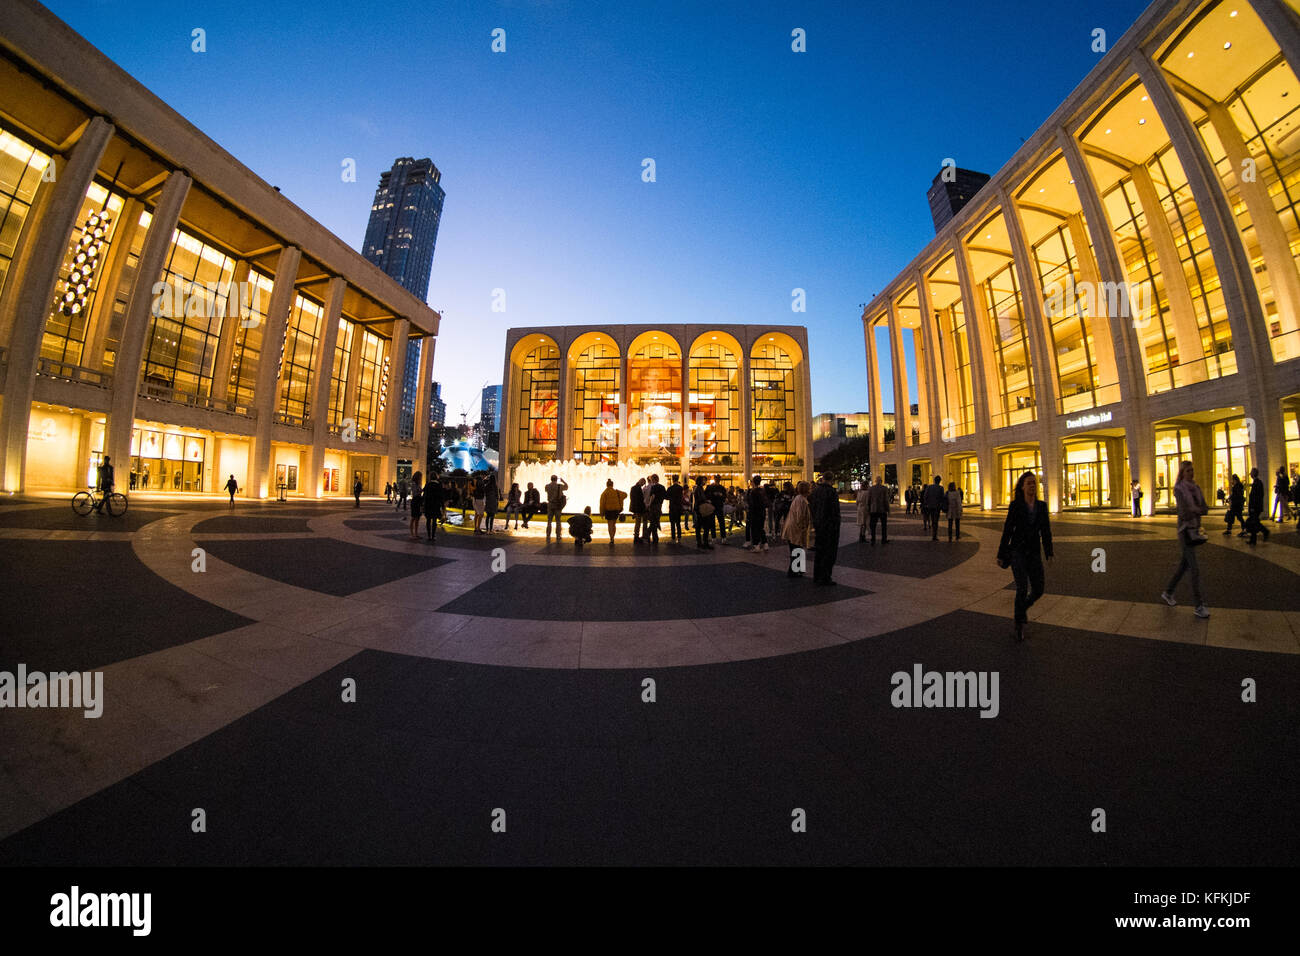 Lincoln Center for the Performing Arts, Manhattan, New York City, NY, United States of America. USA - Stock Image